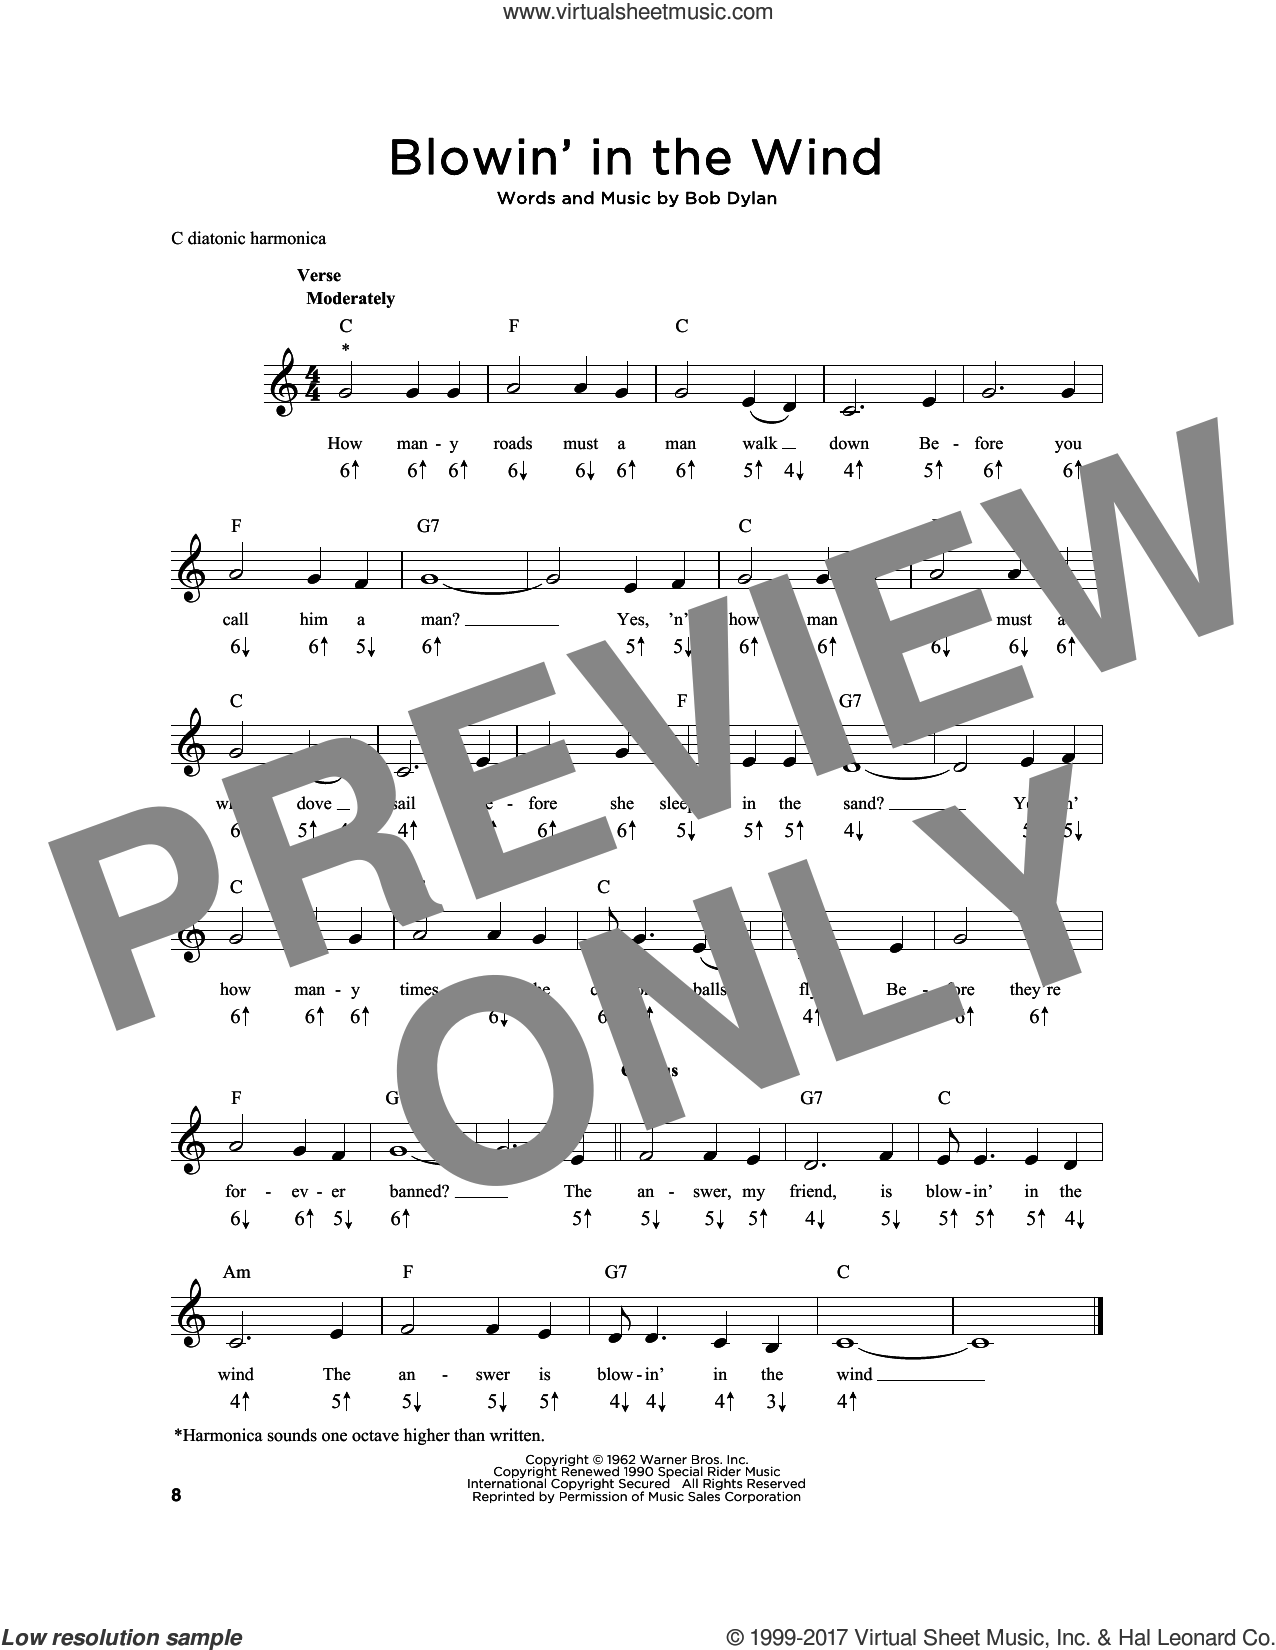 Blowin' In The Wind sheet music for harmonica solo by Bob Dylan, intermediate skill level